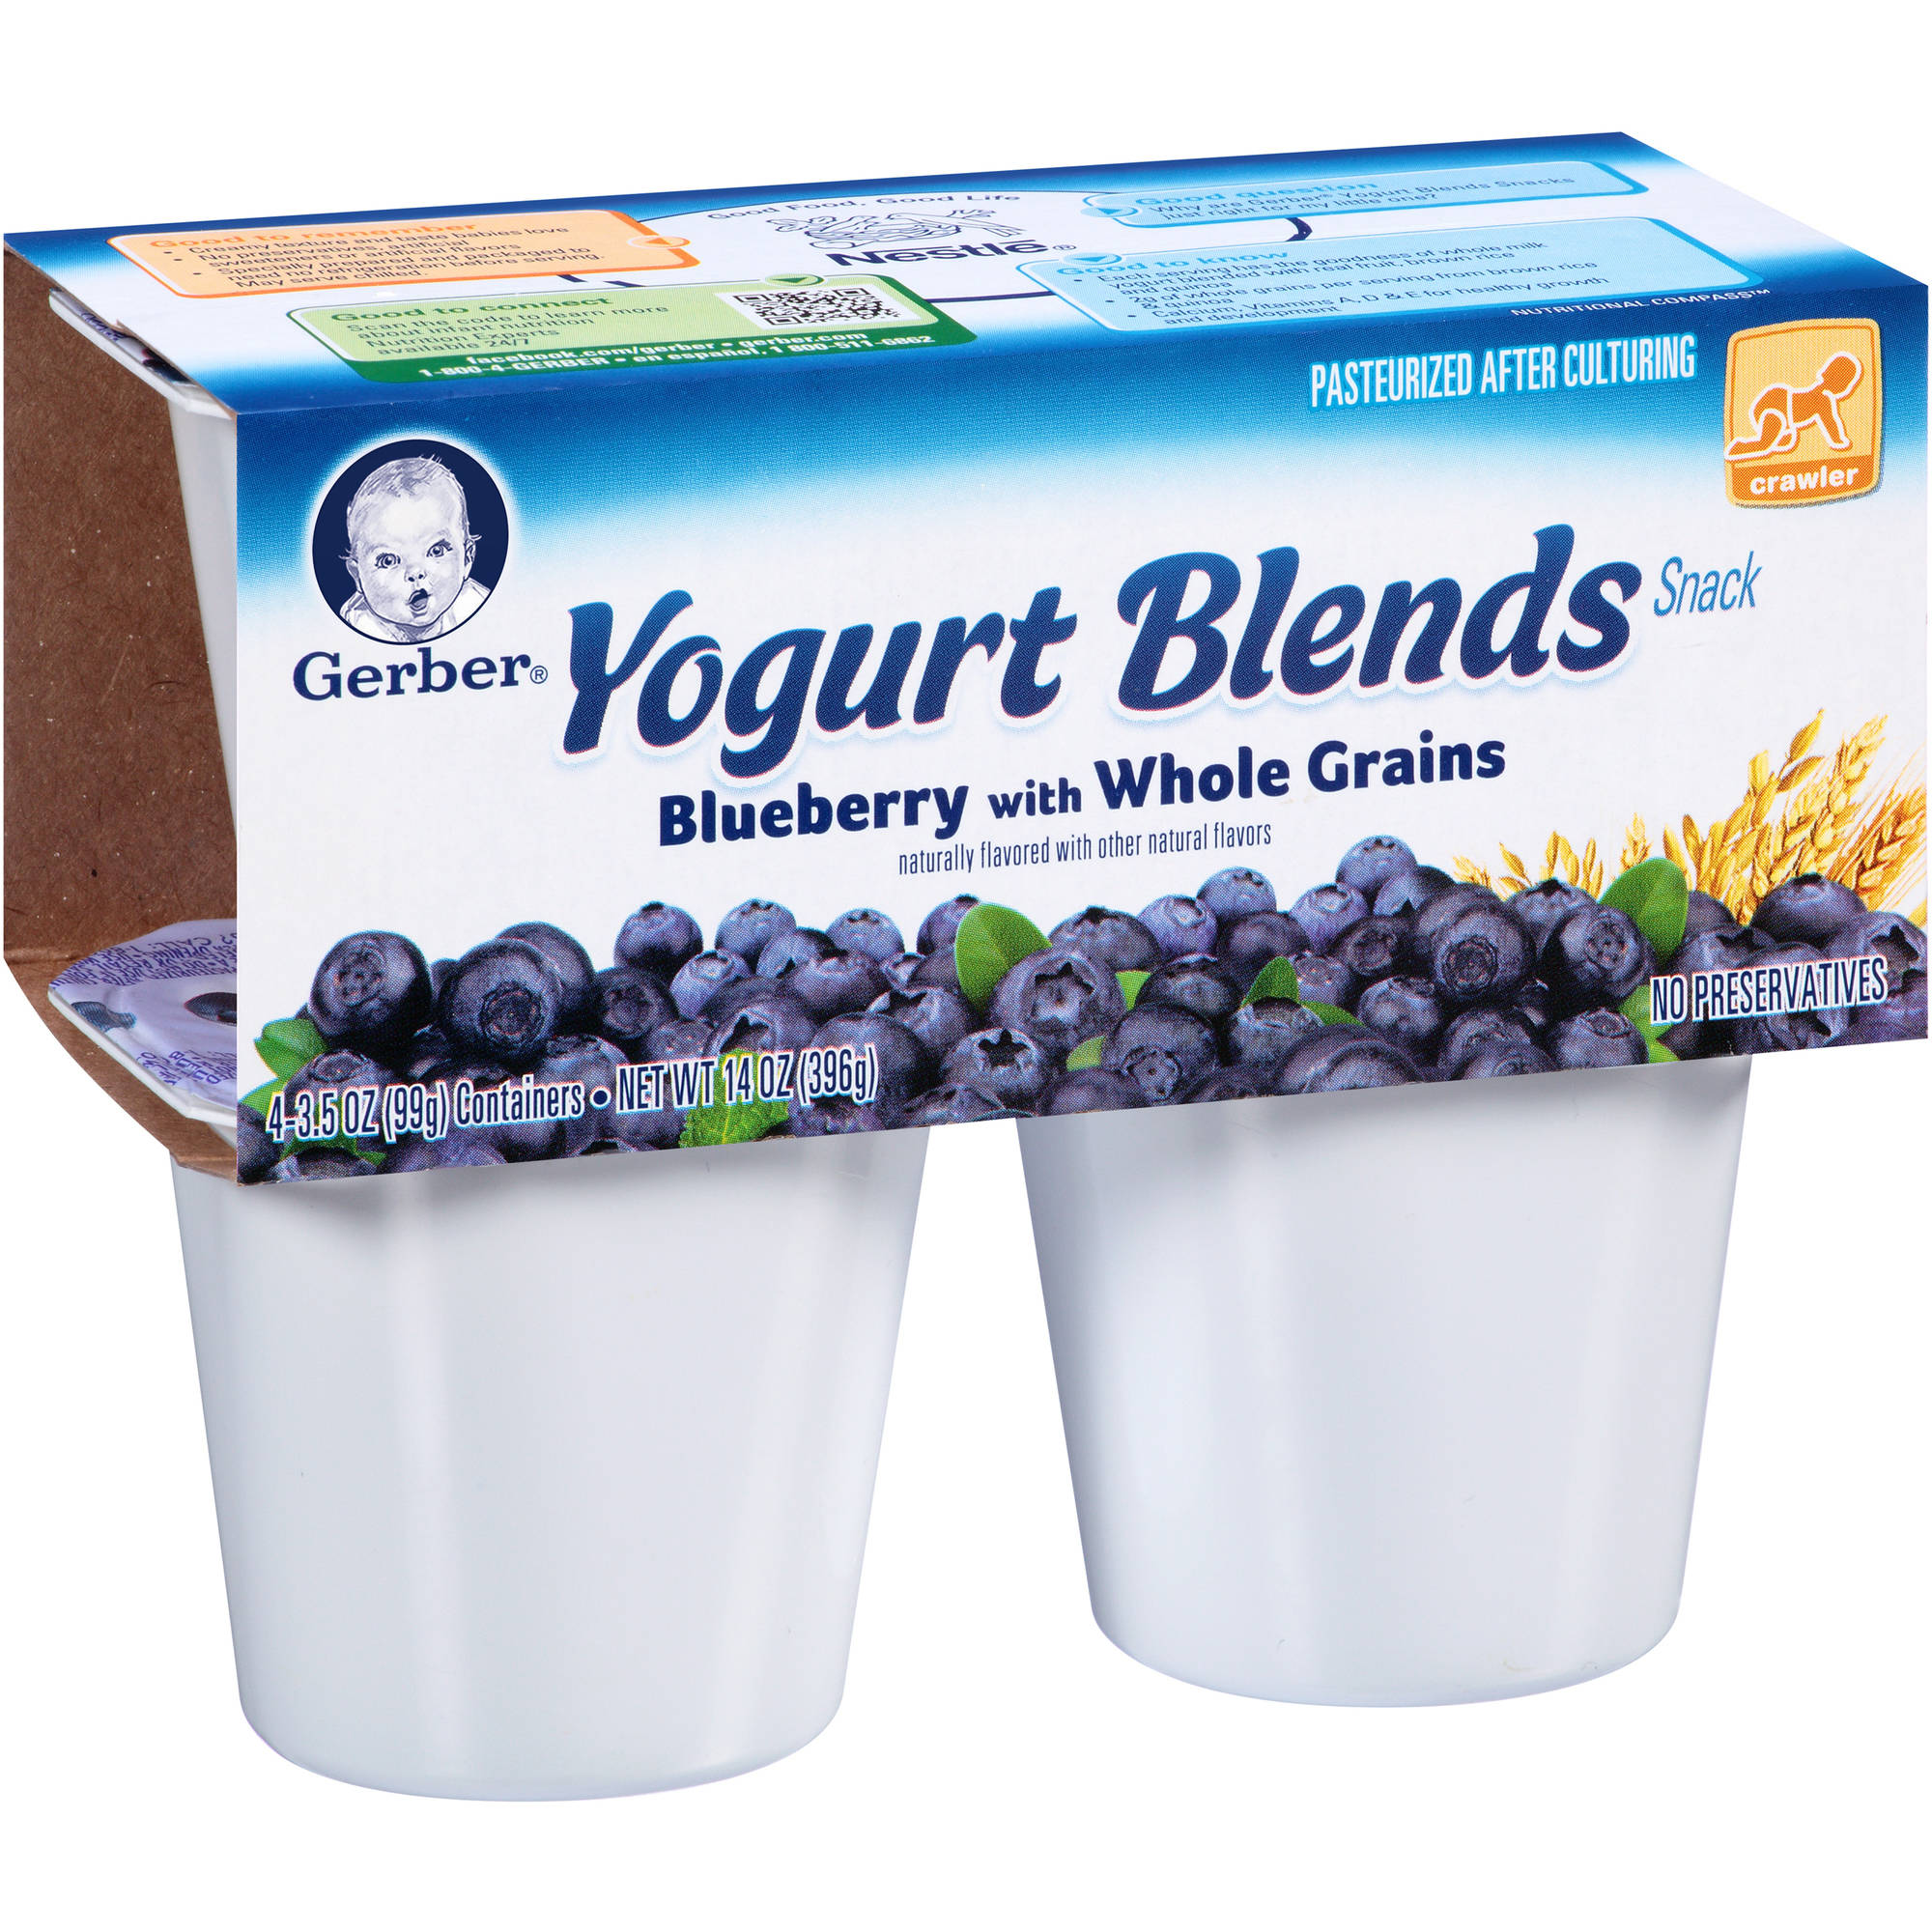 Gerber Yogurt Blends Snack Blueberry with Whole Grains, 3.5 oz, 4 count